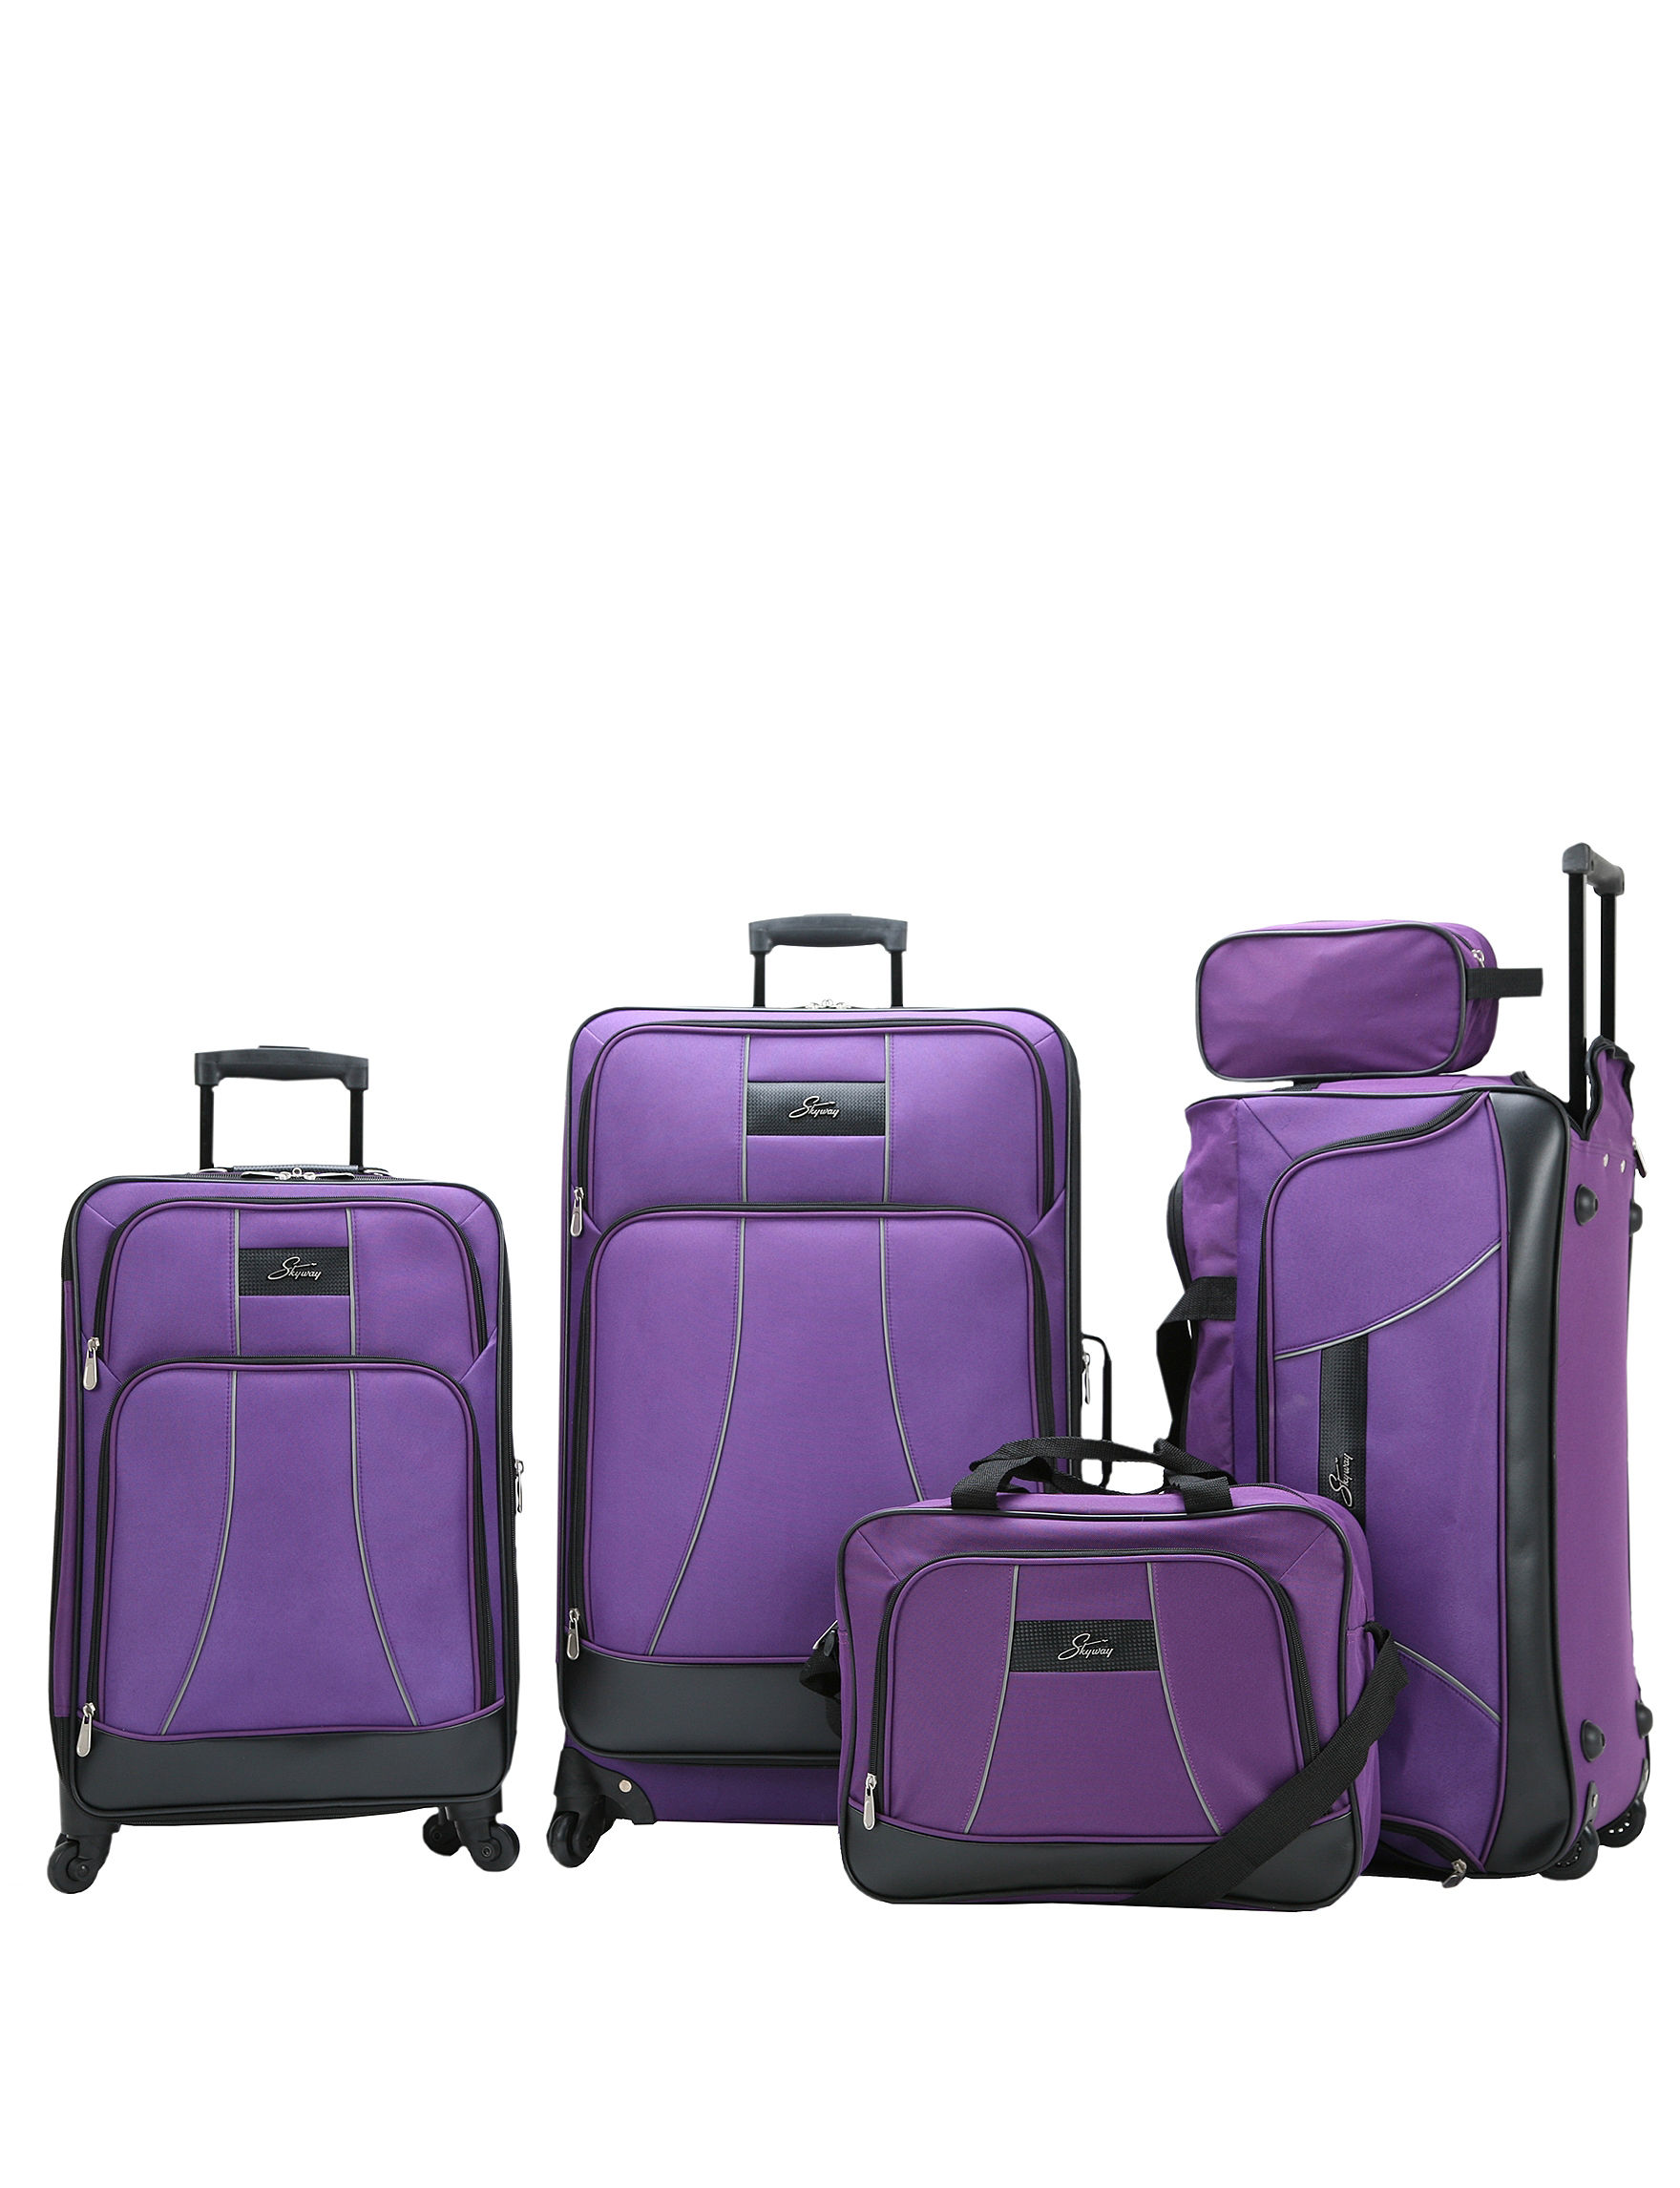 Skyway Purple Luggage Sets